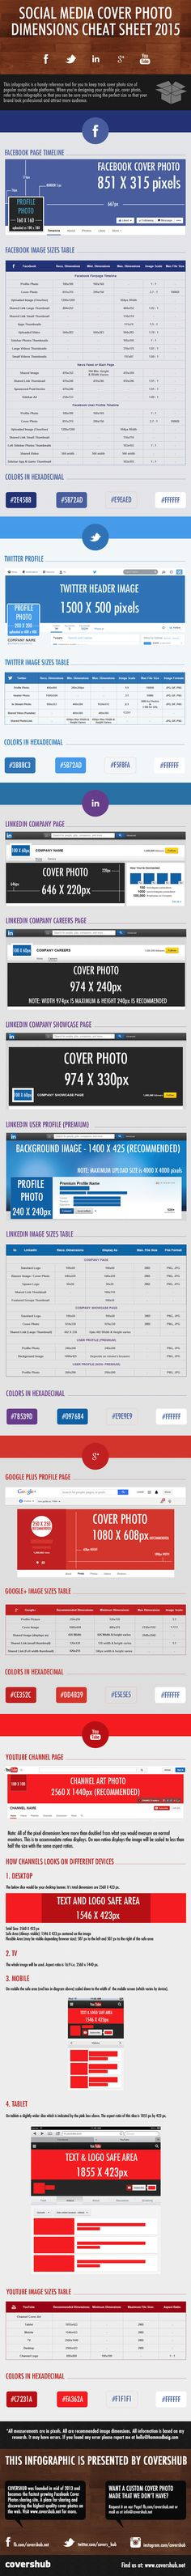 Social Media Cover Photo Dimensions Cheat Sheet for 2015 (infographic). Marketing Digital, Marketing Online, Facebook Marketing, Internet Marketing, Social Media Marketing, Affiliate Marketing, Social Networks, Social Media Images, Social Media Design